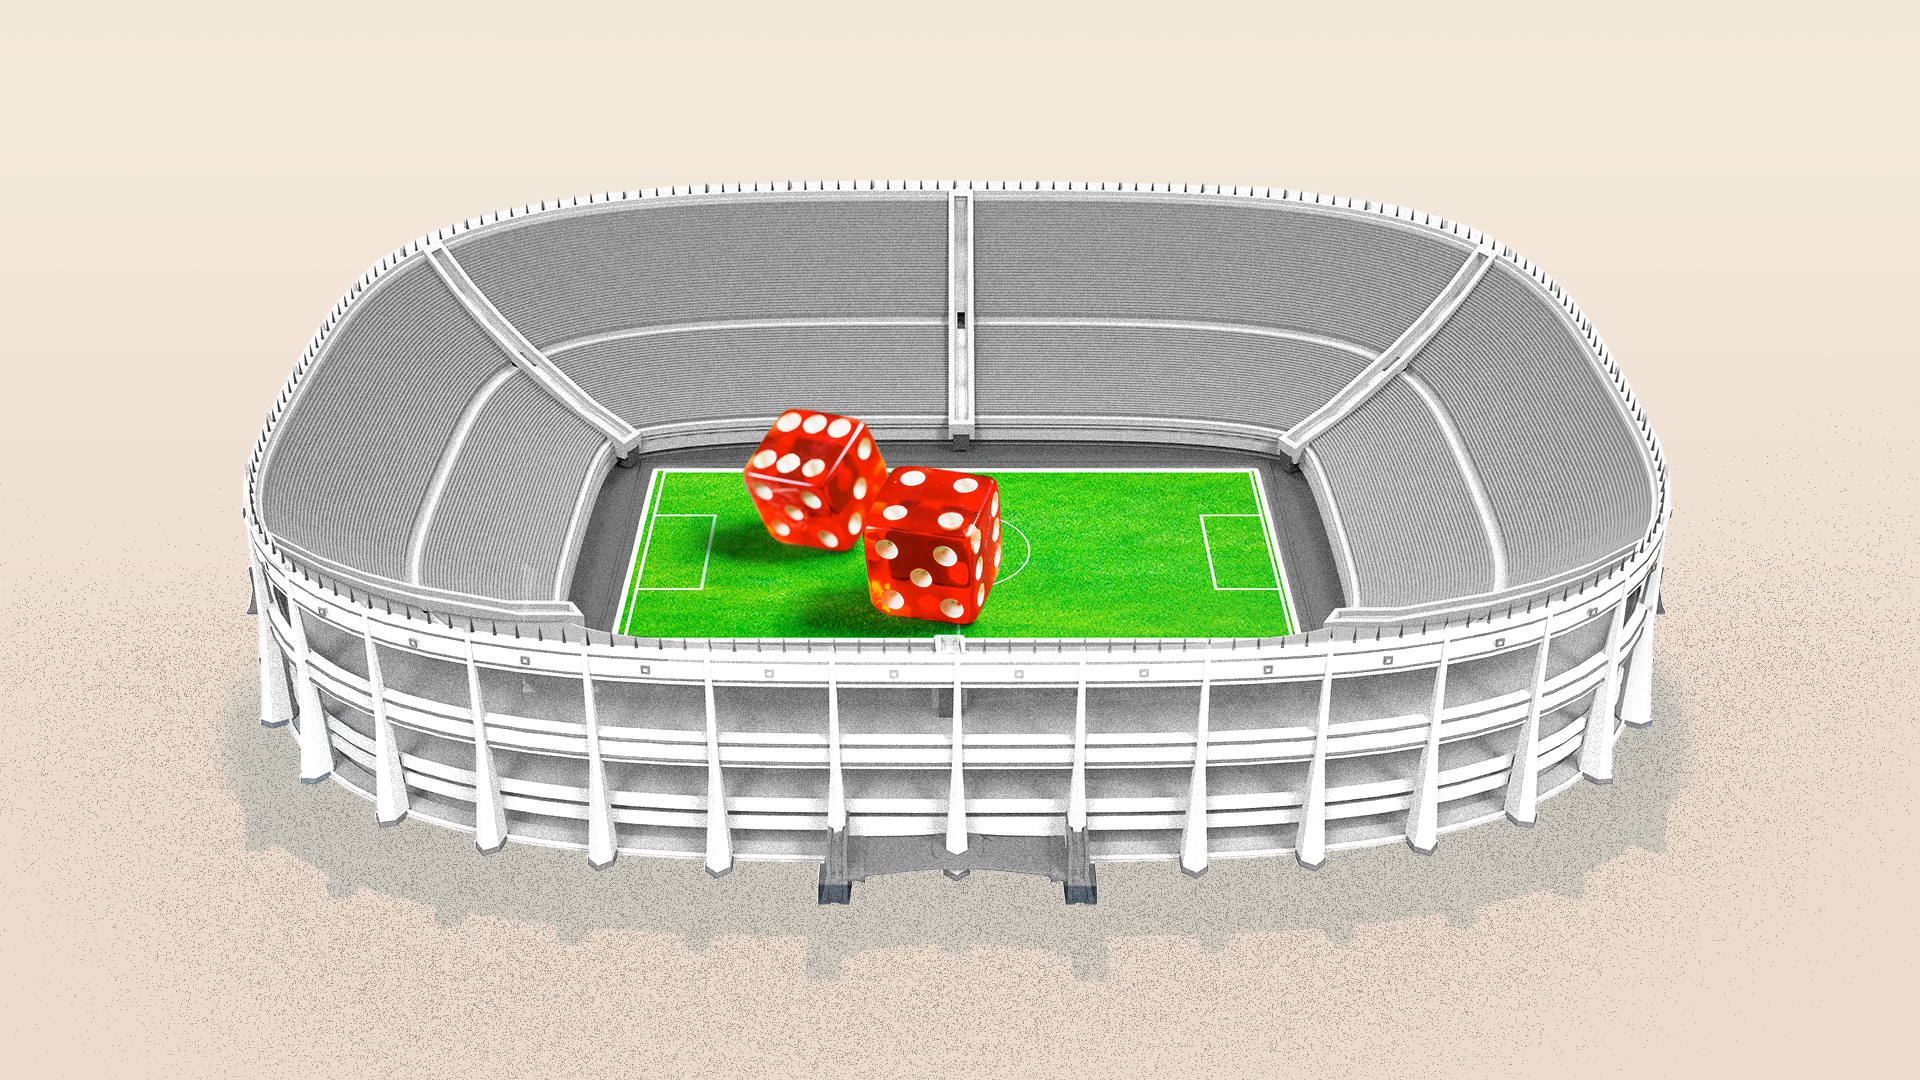 Stadium with two dice in the middle